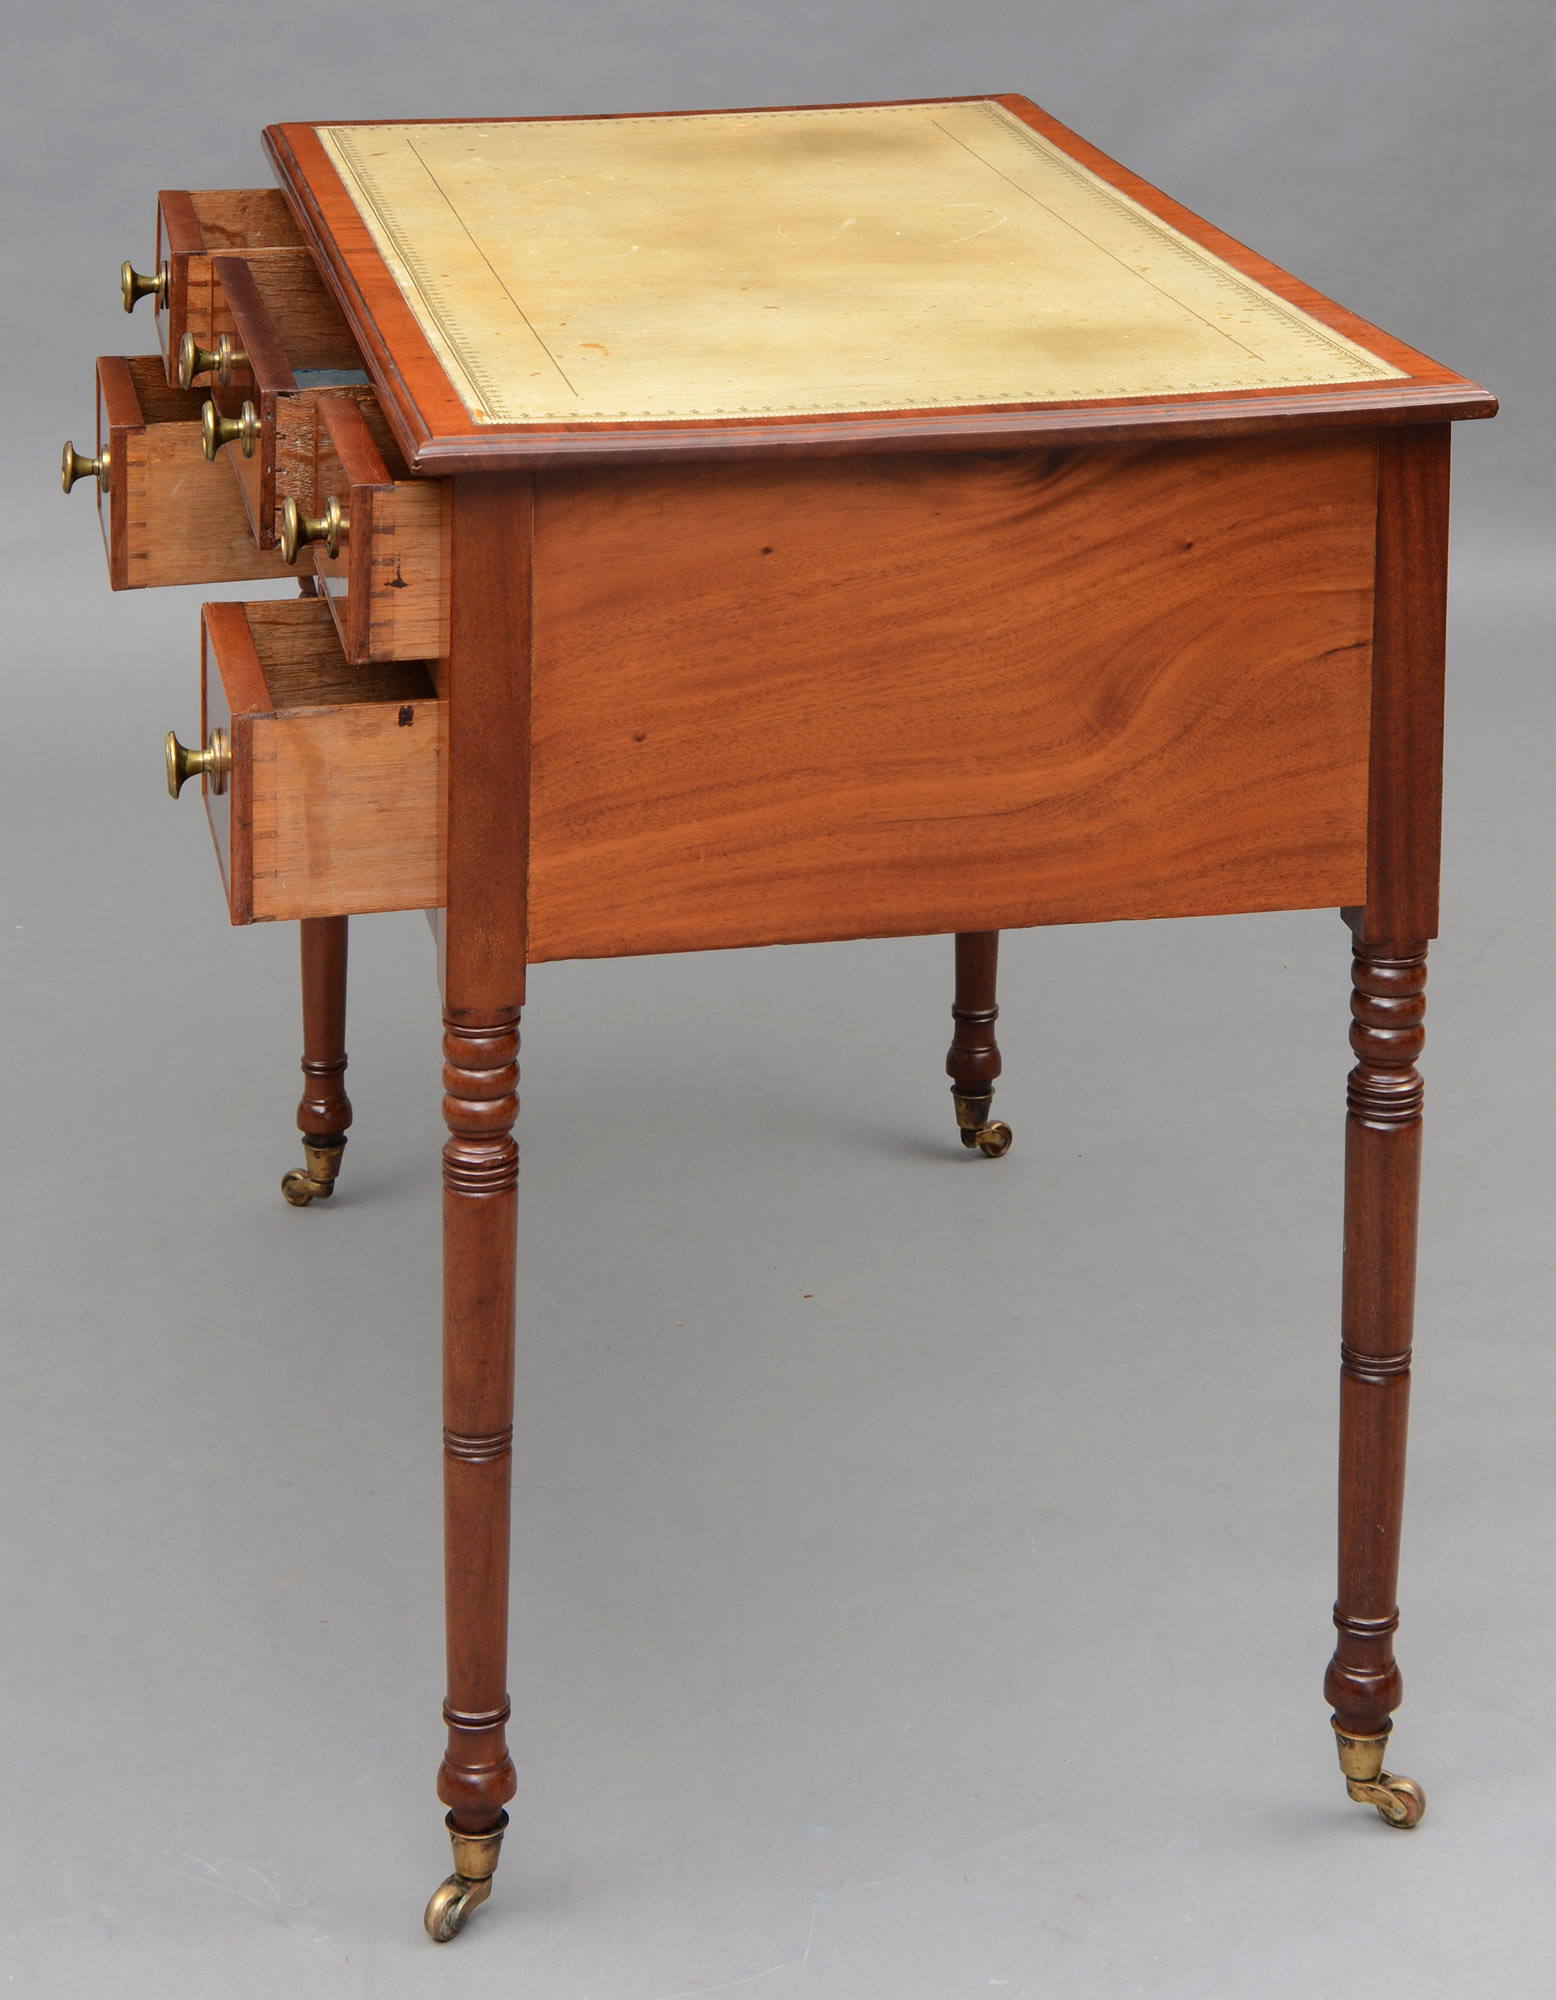 ... English Antique Regency Mahogany Ladies Writing Desk ... - English Regency Mahogany Ladies Antique Writing Desk